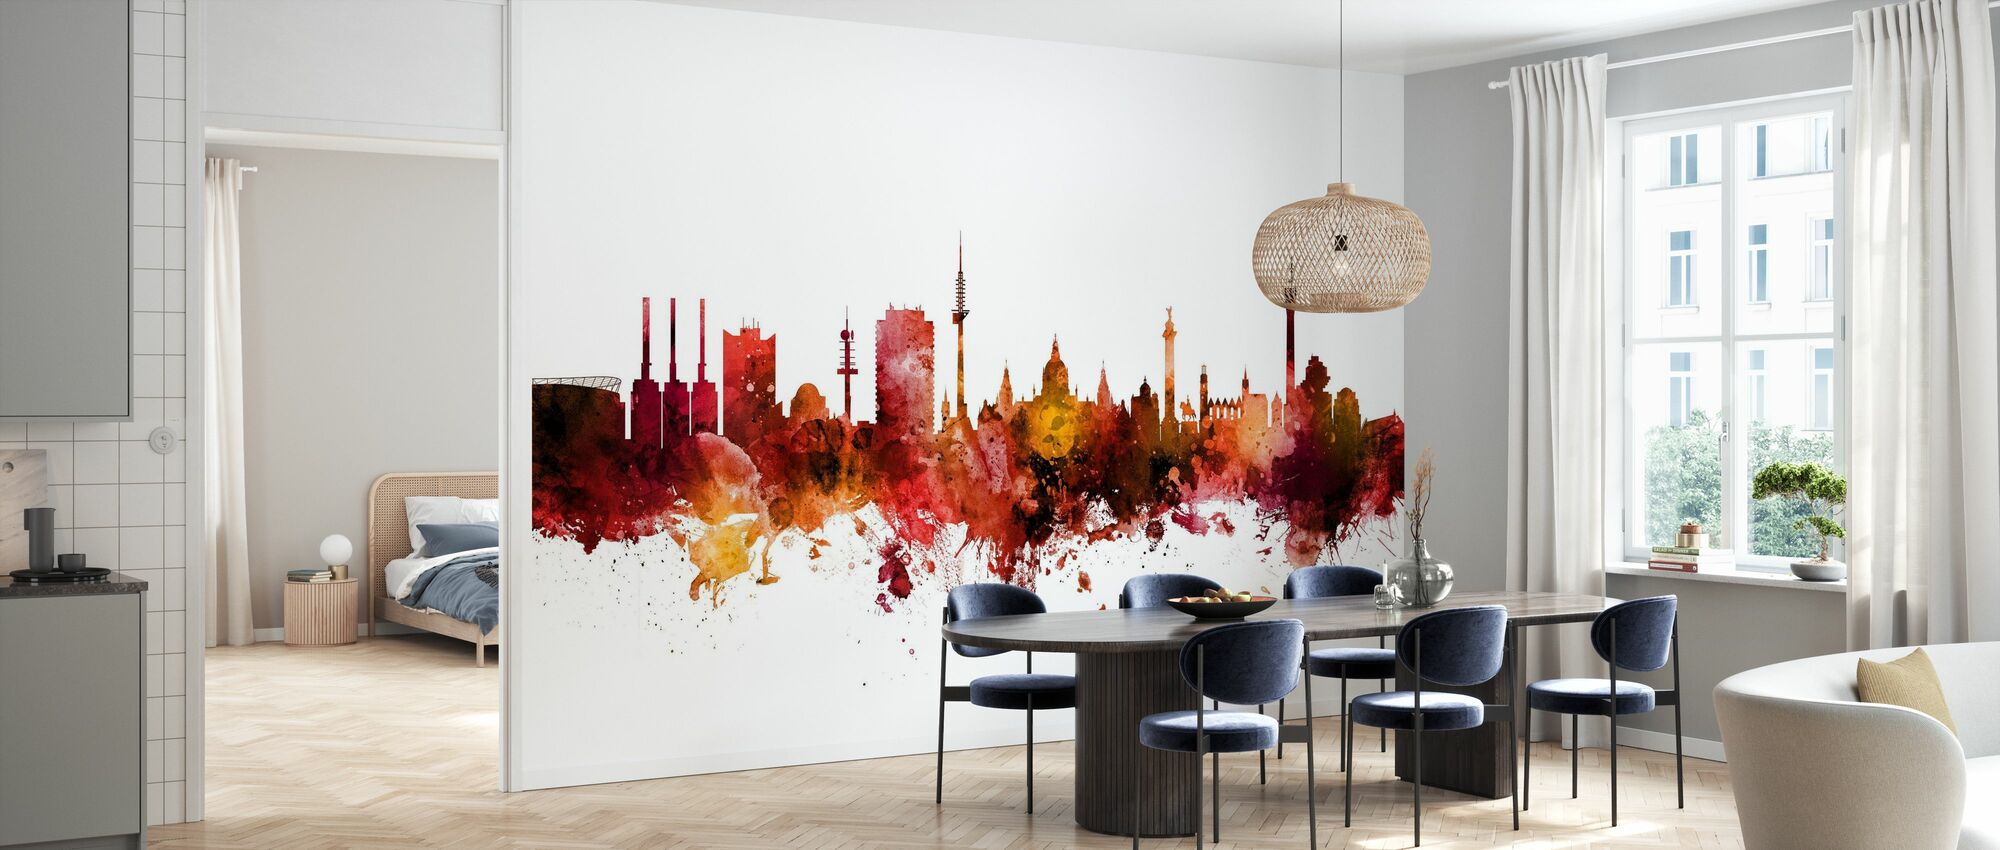 Hannover Germany Skyline - Wallpaper - Kitchen